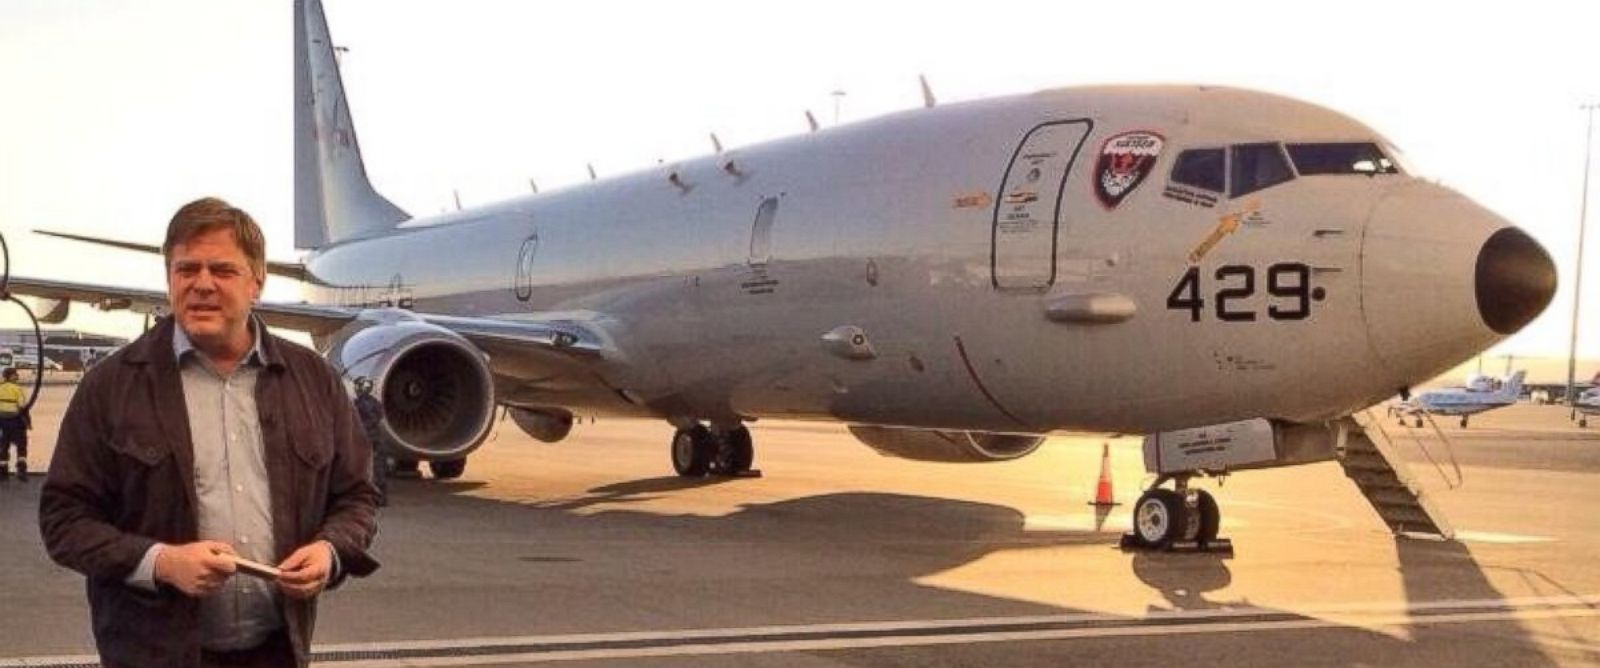 PHOTO: David Wright in front of a P-8 Poseidon search plane.